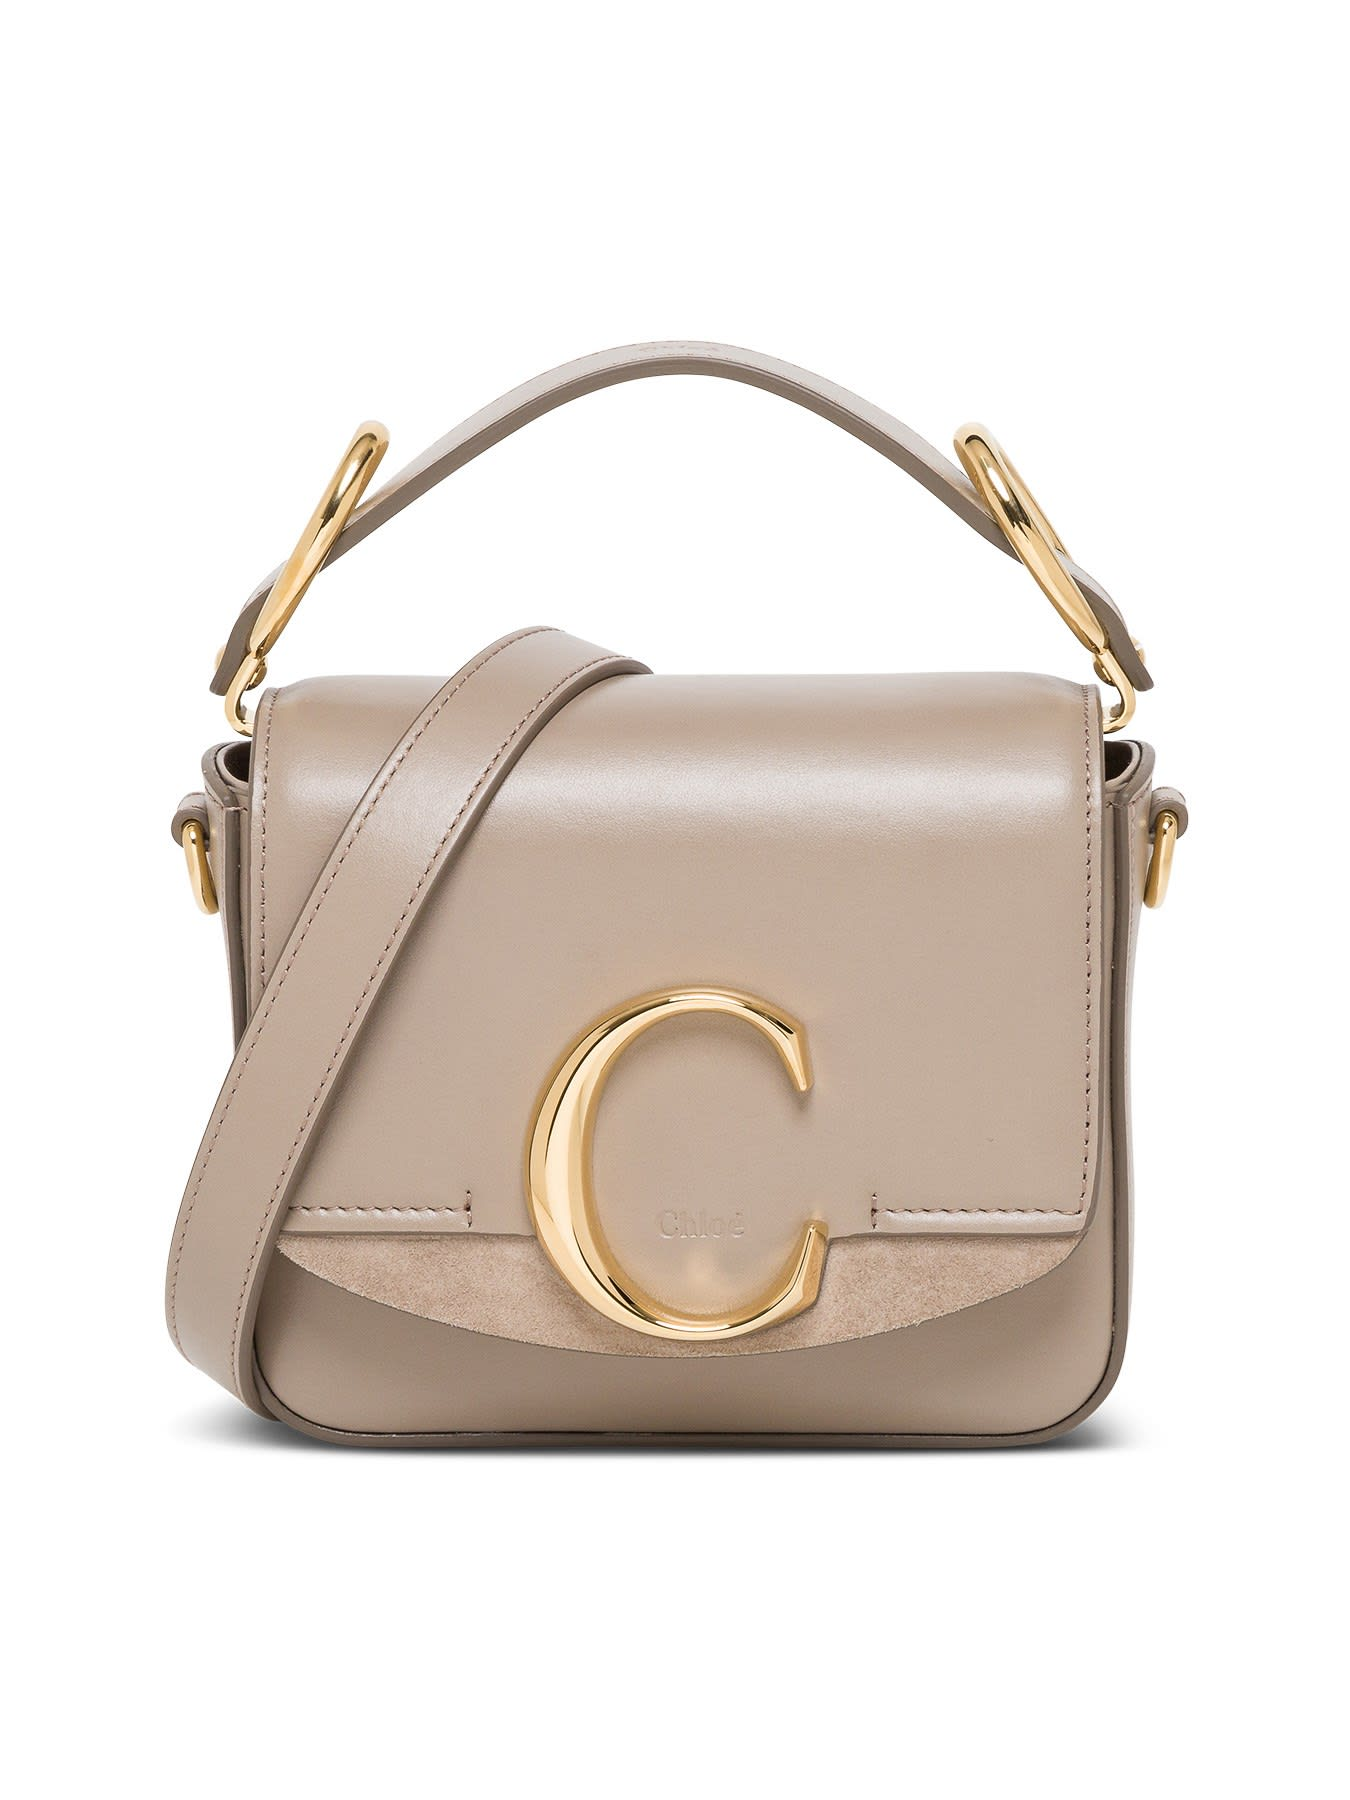 Chloé CHLOE C MINI CROSSBODY BAG